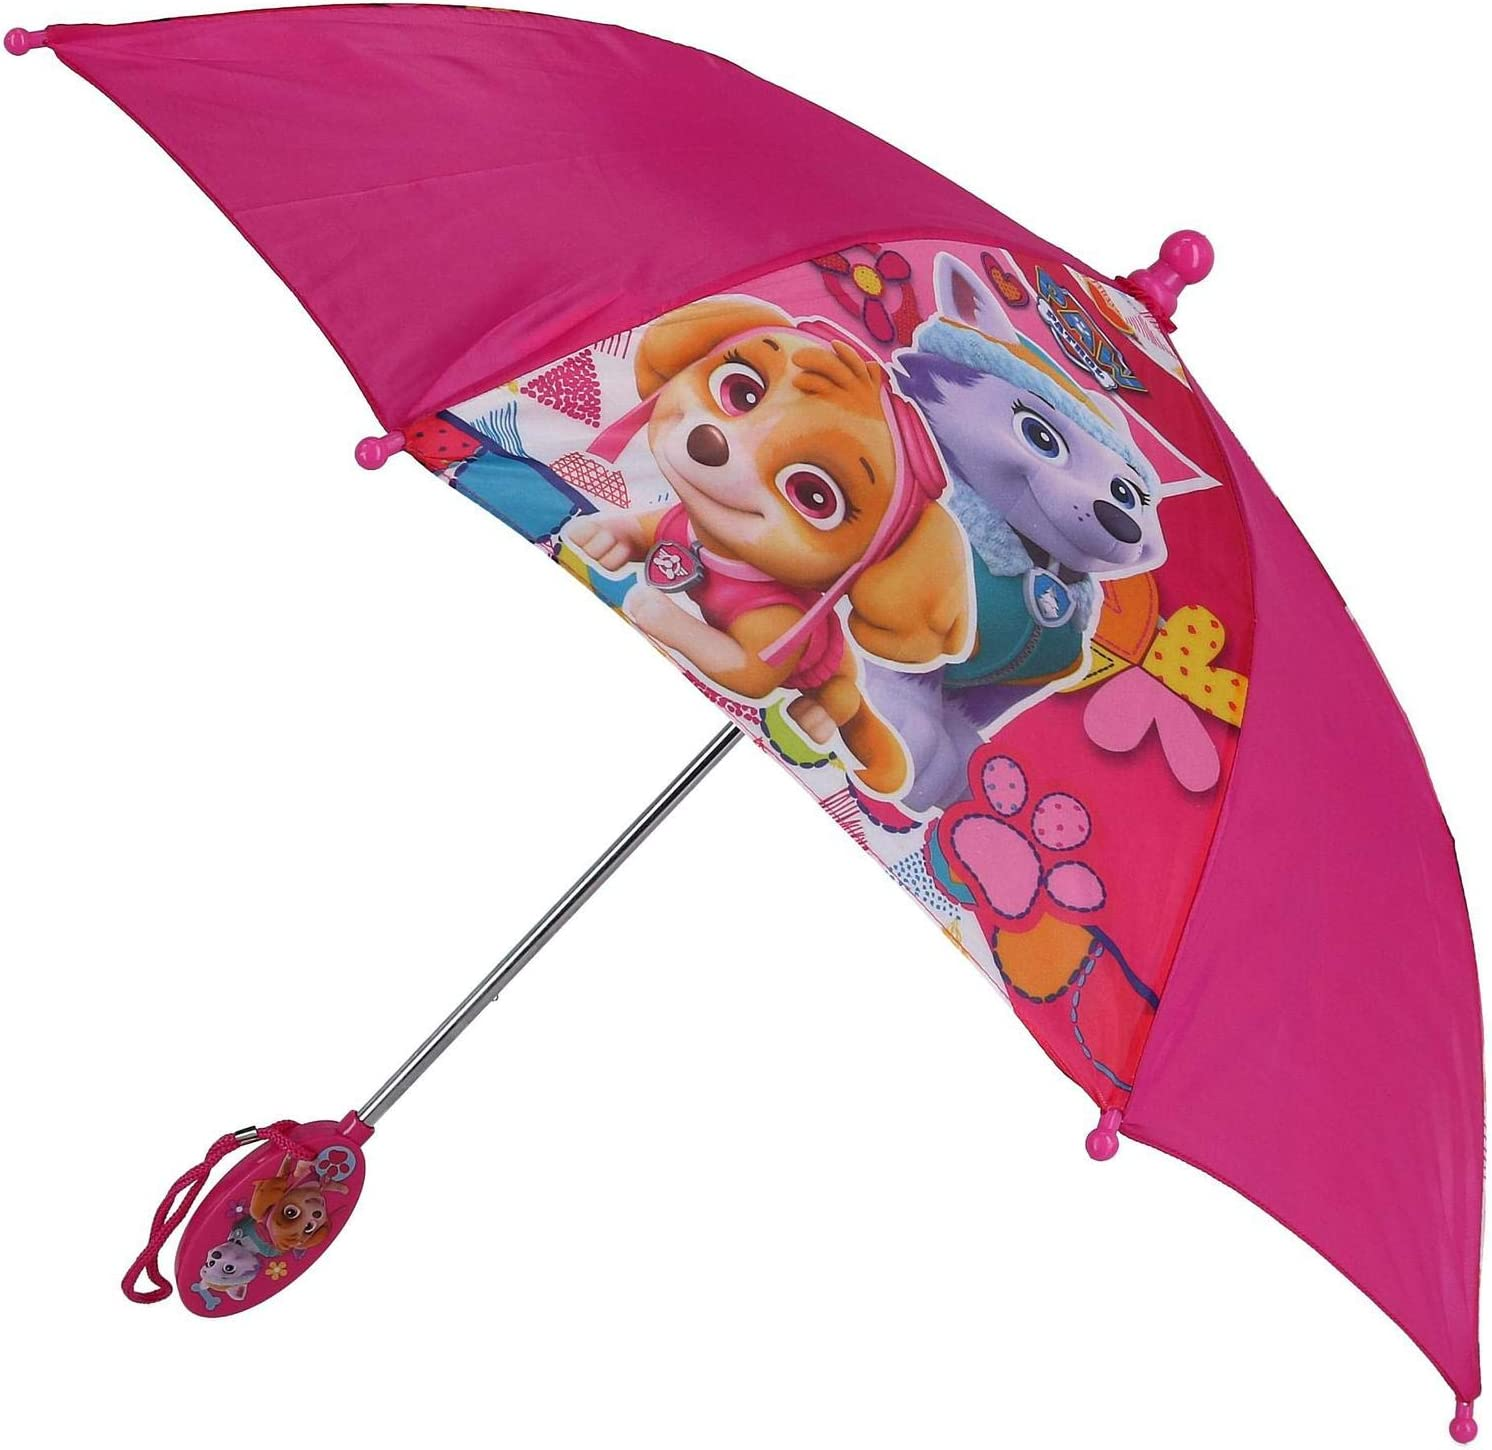 Paw Patrol Kids Umbrella with Clamshell Handle